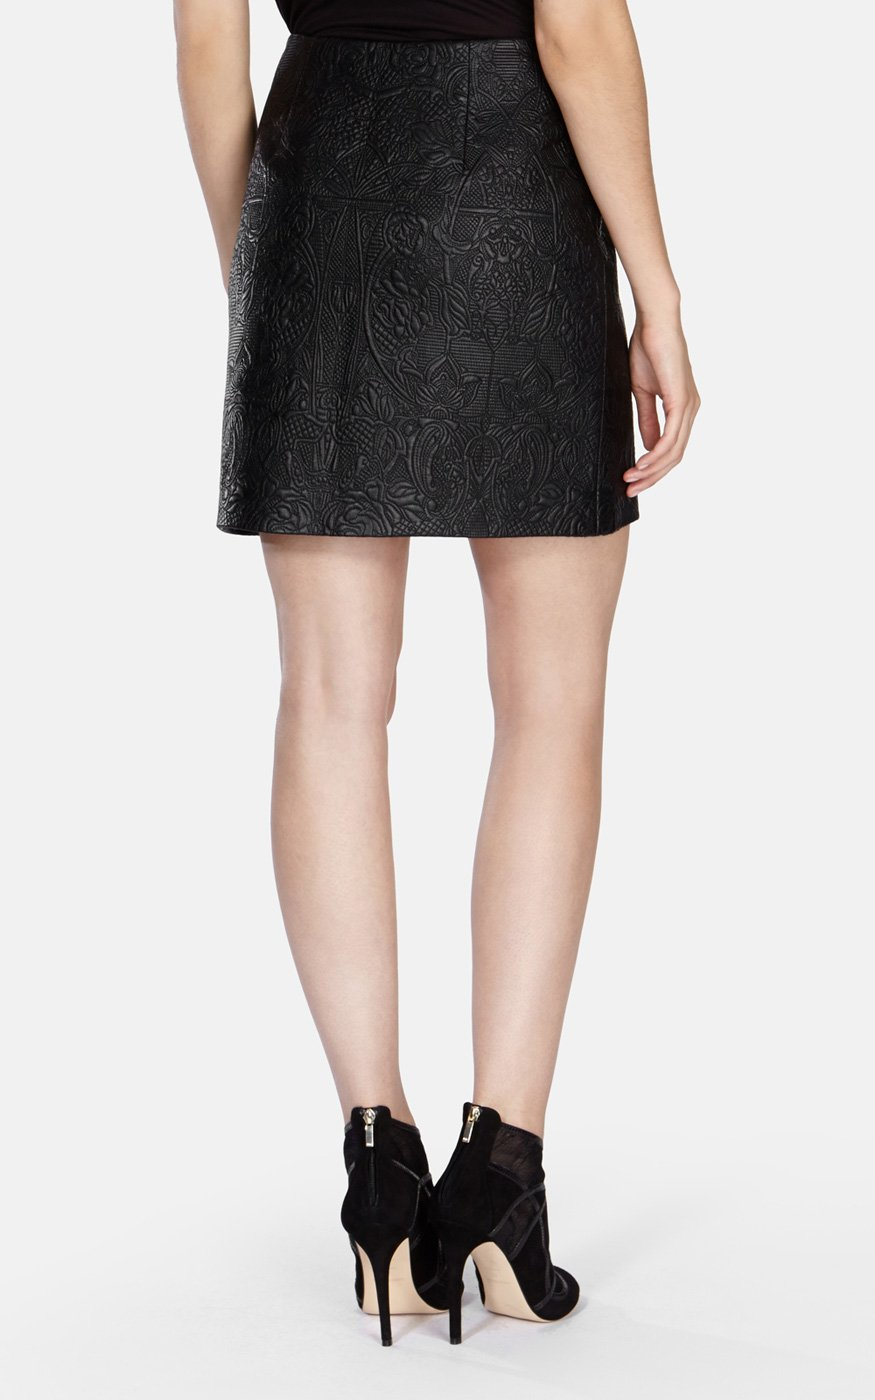 Karen millen Quilted Faux-leather Skirt in Black | Lyst